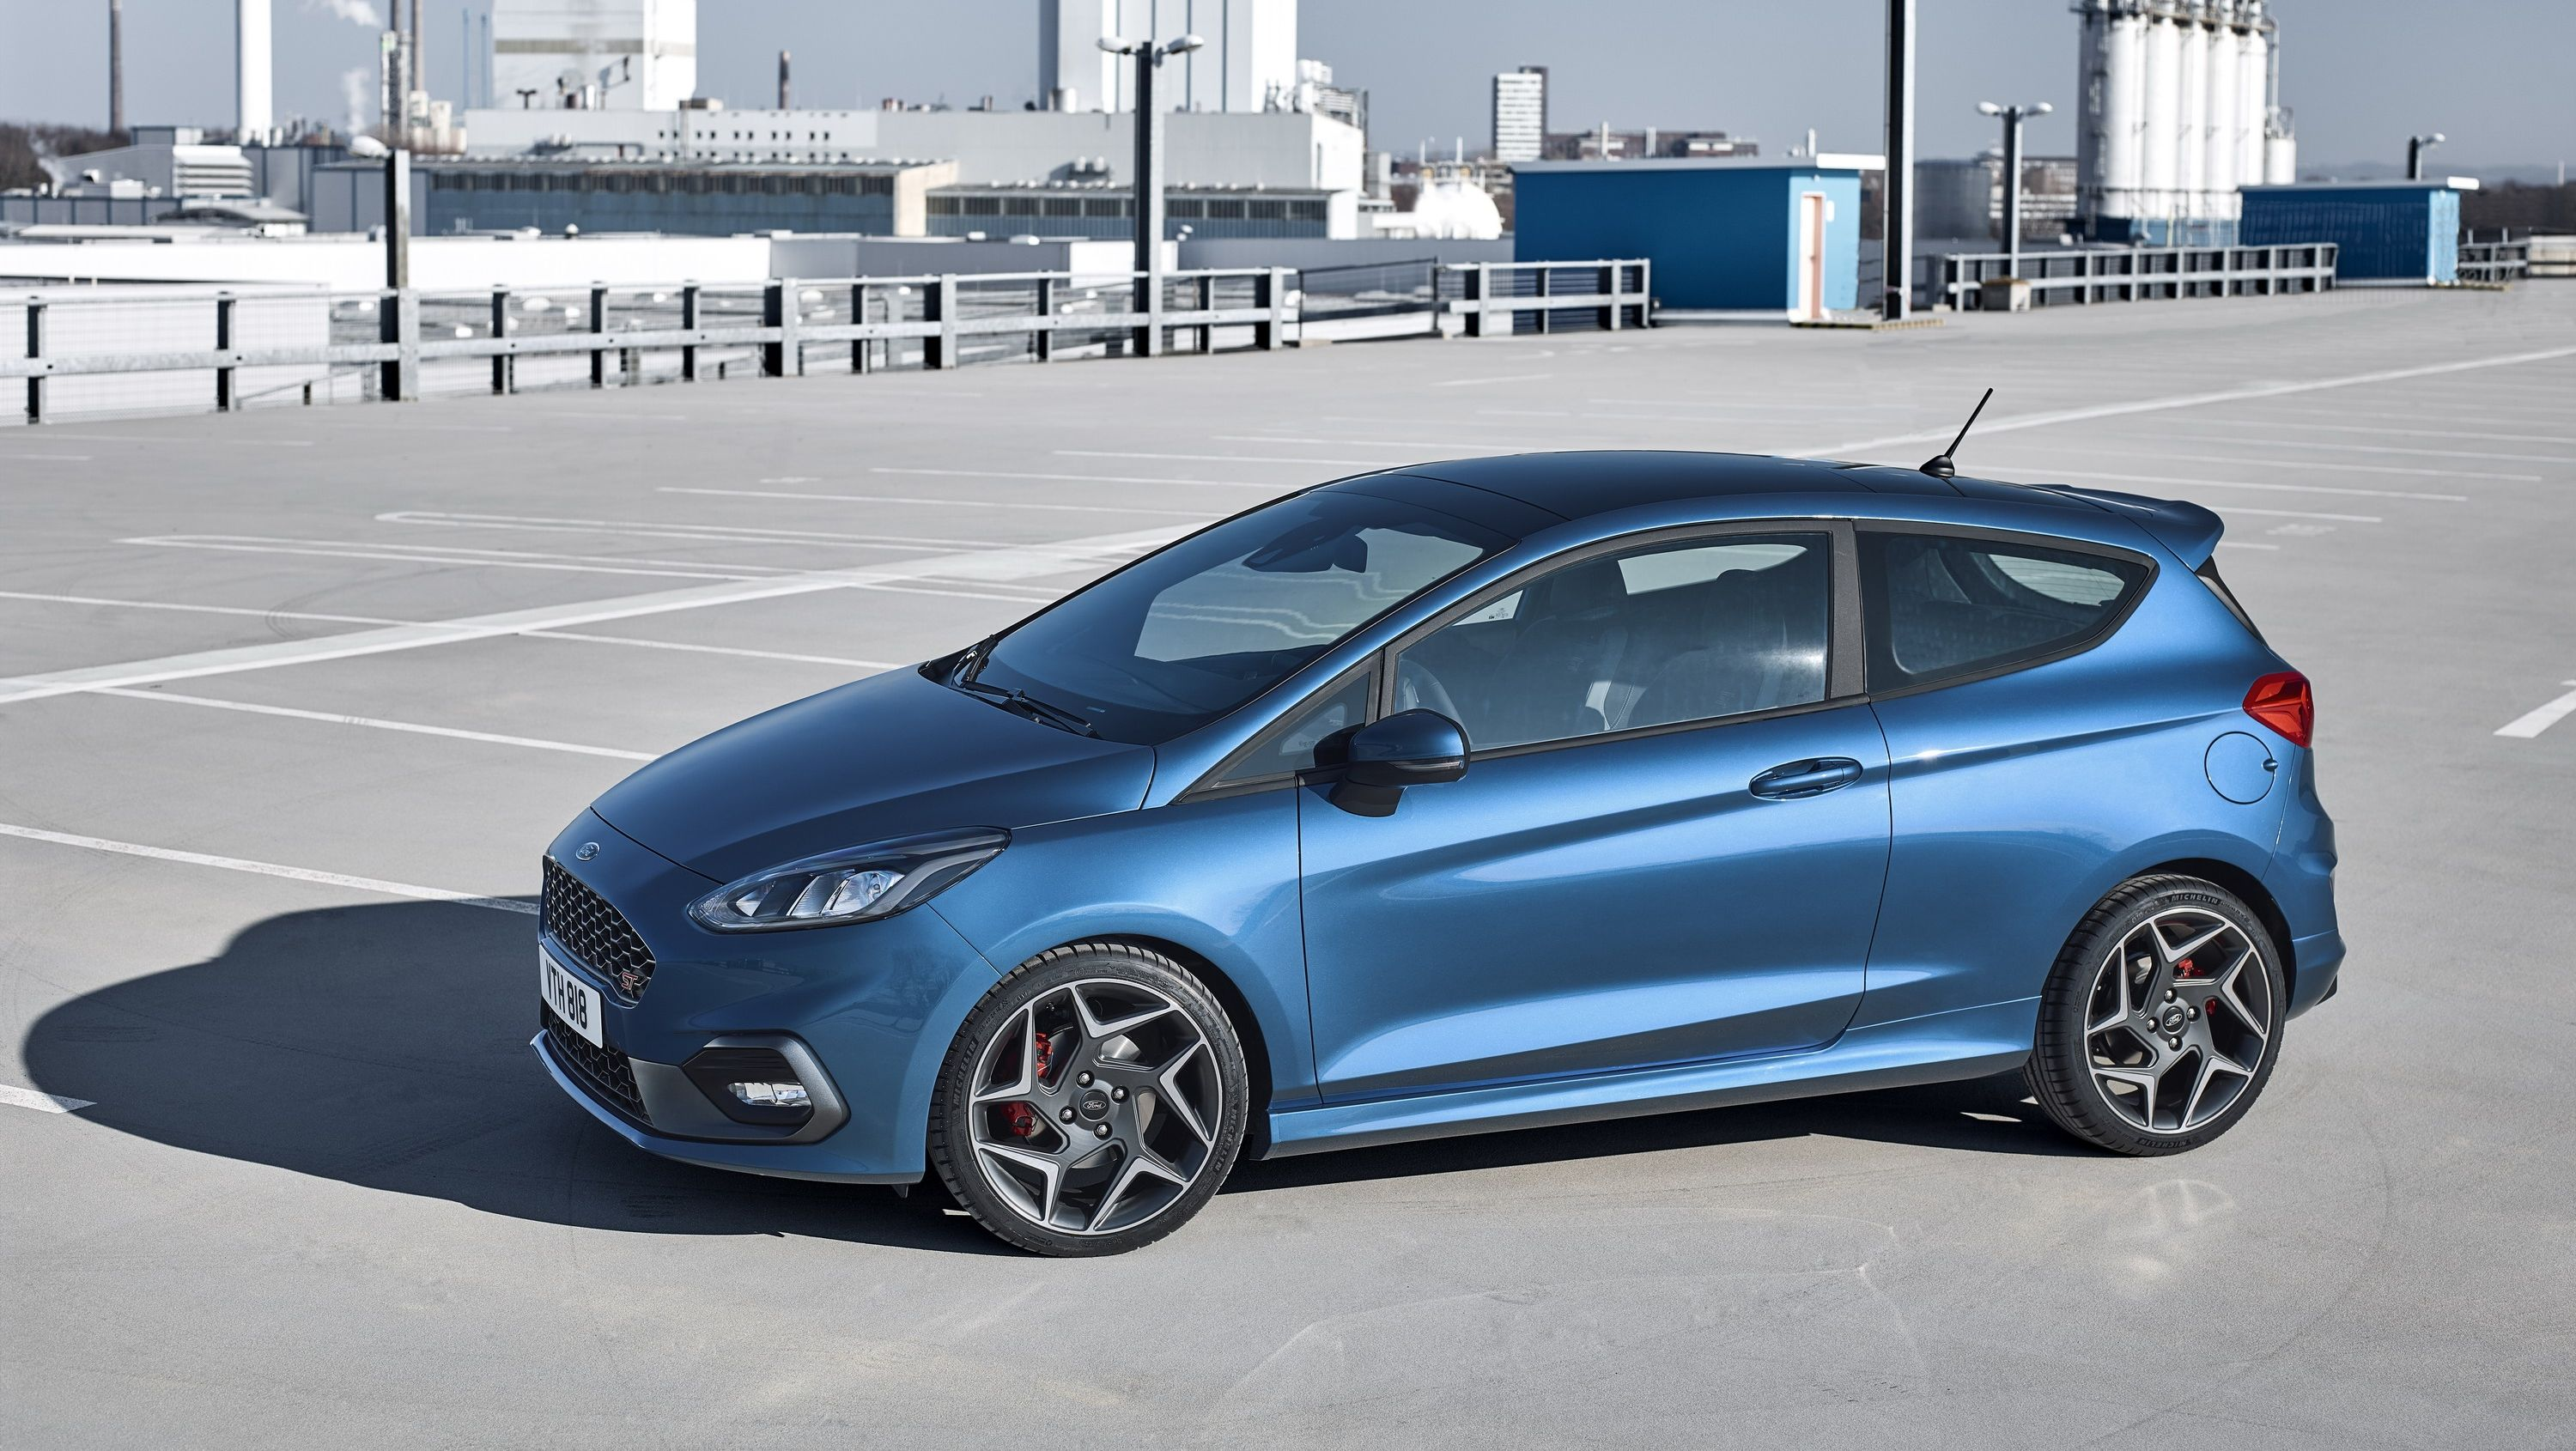 If You Re Considering The 2019 Ford Fiesta St Line You Might As Well Just Buy The Fiesta St Ford Fiesta St Ford Fiesta Fiesta St